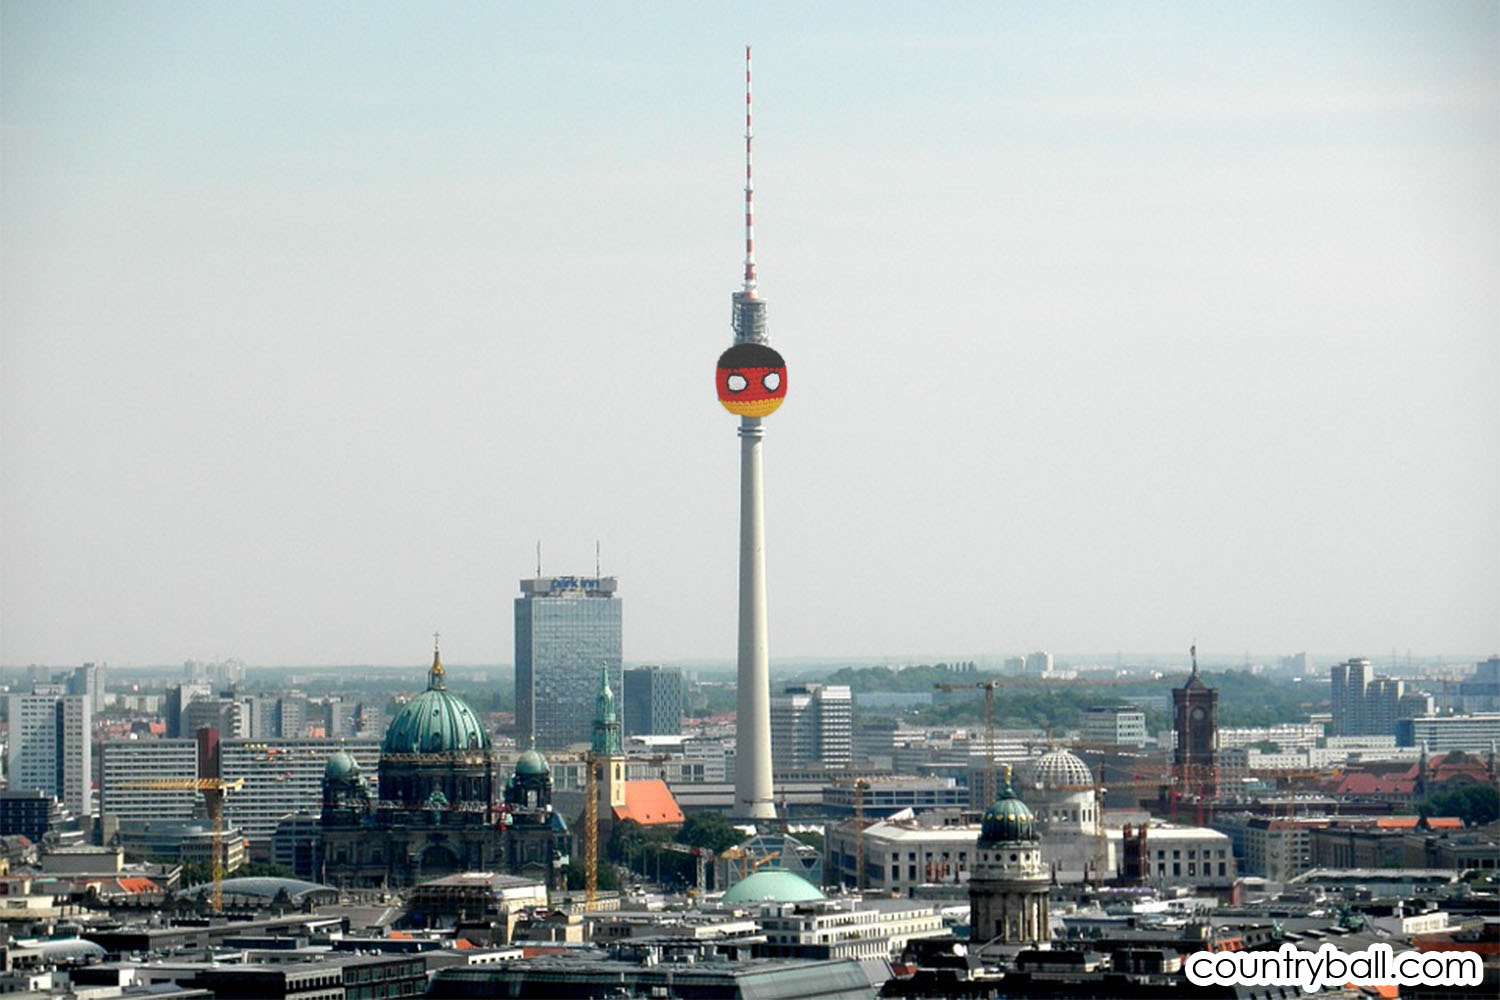 The TV Tower in Berlin